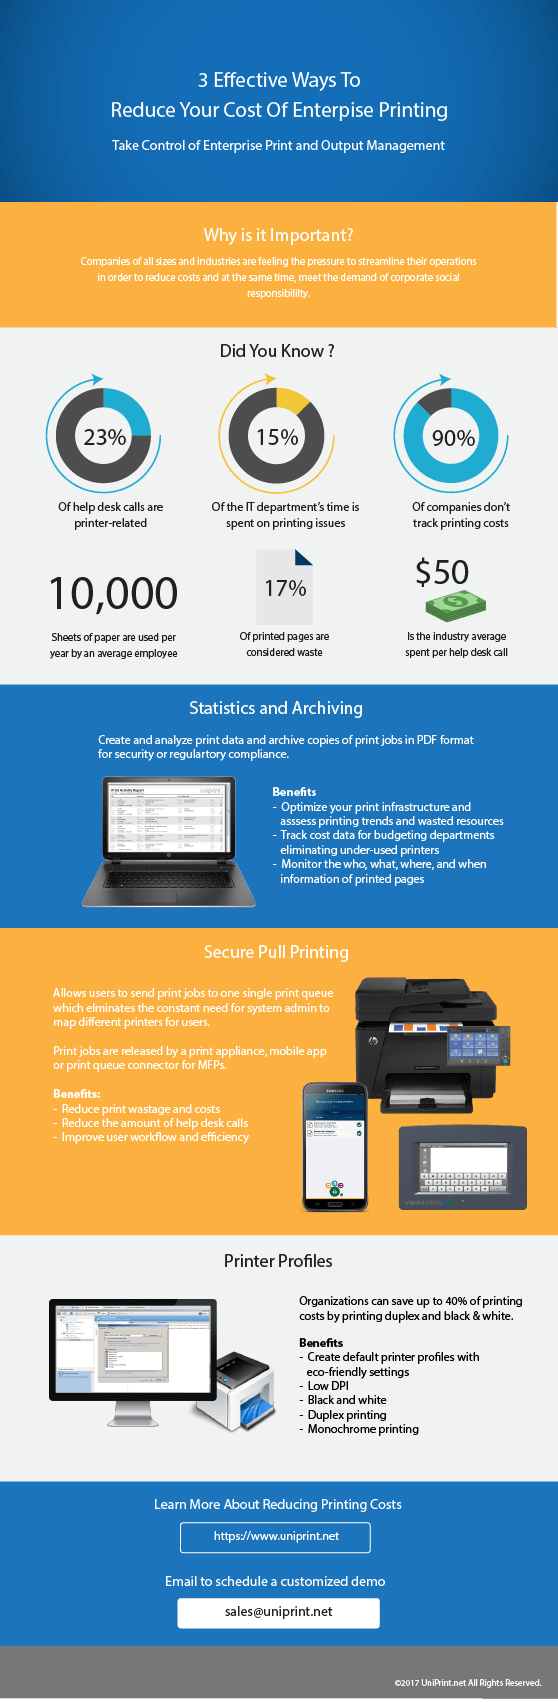 3 effective ways to reduce printing costs infographic